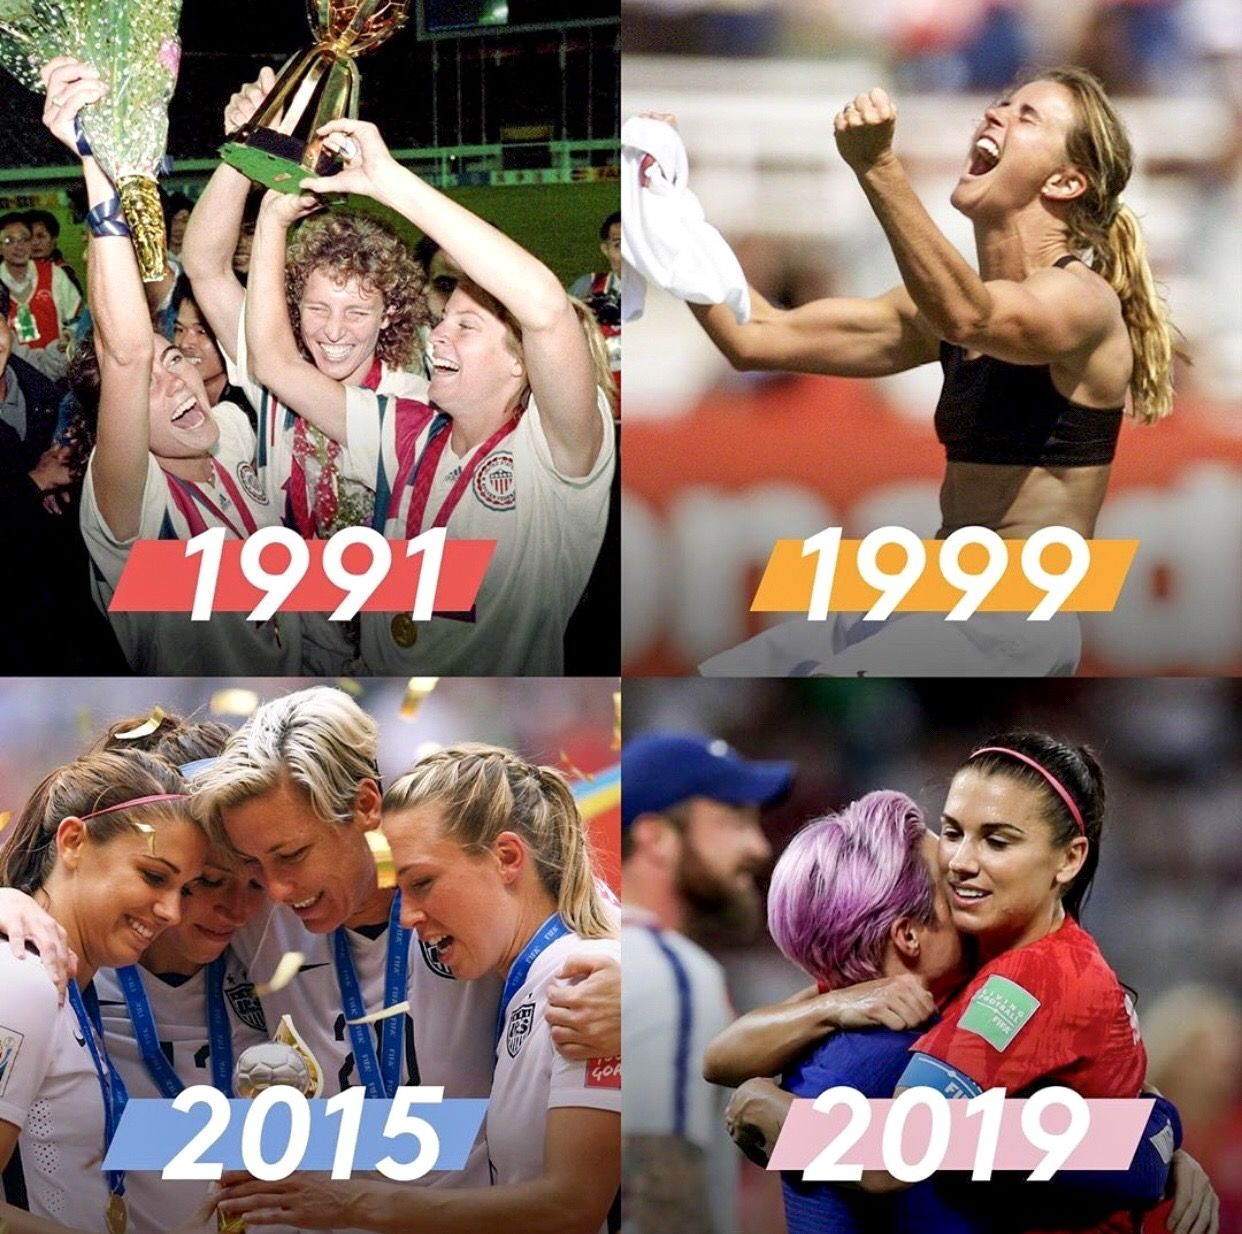 Uswnt S 1991 1999 2015 2019 World Cup Wins Uswnt Sports Wallpapers Usa Soccer Women